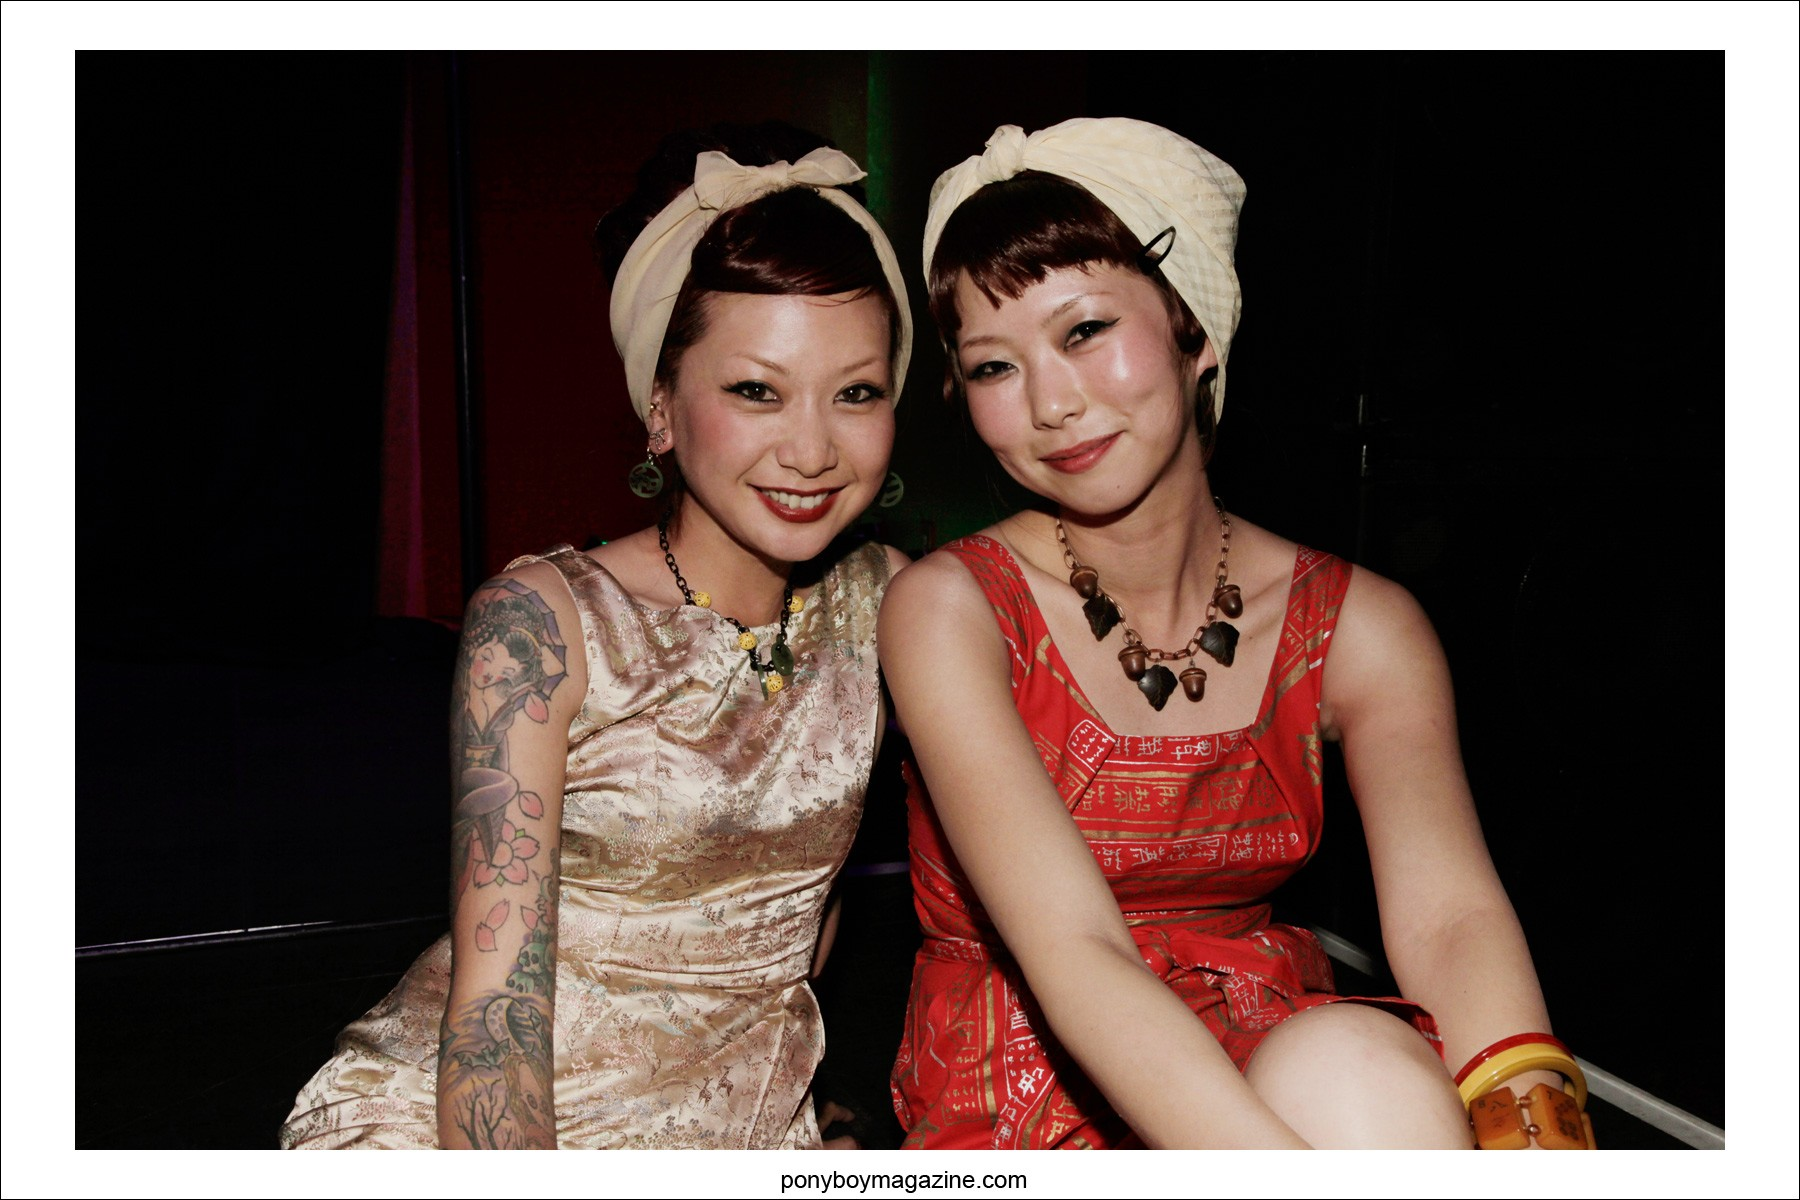 Young Japanese ladies photographed in vintage 1950s fashions for Ponyboy Magazine at Viva Las Vegas rockabilly weekender by Alexander Thompson.